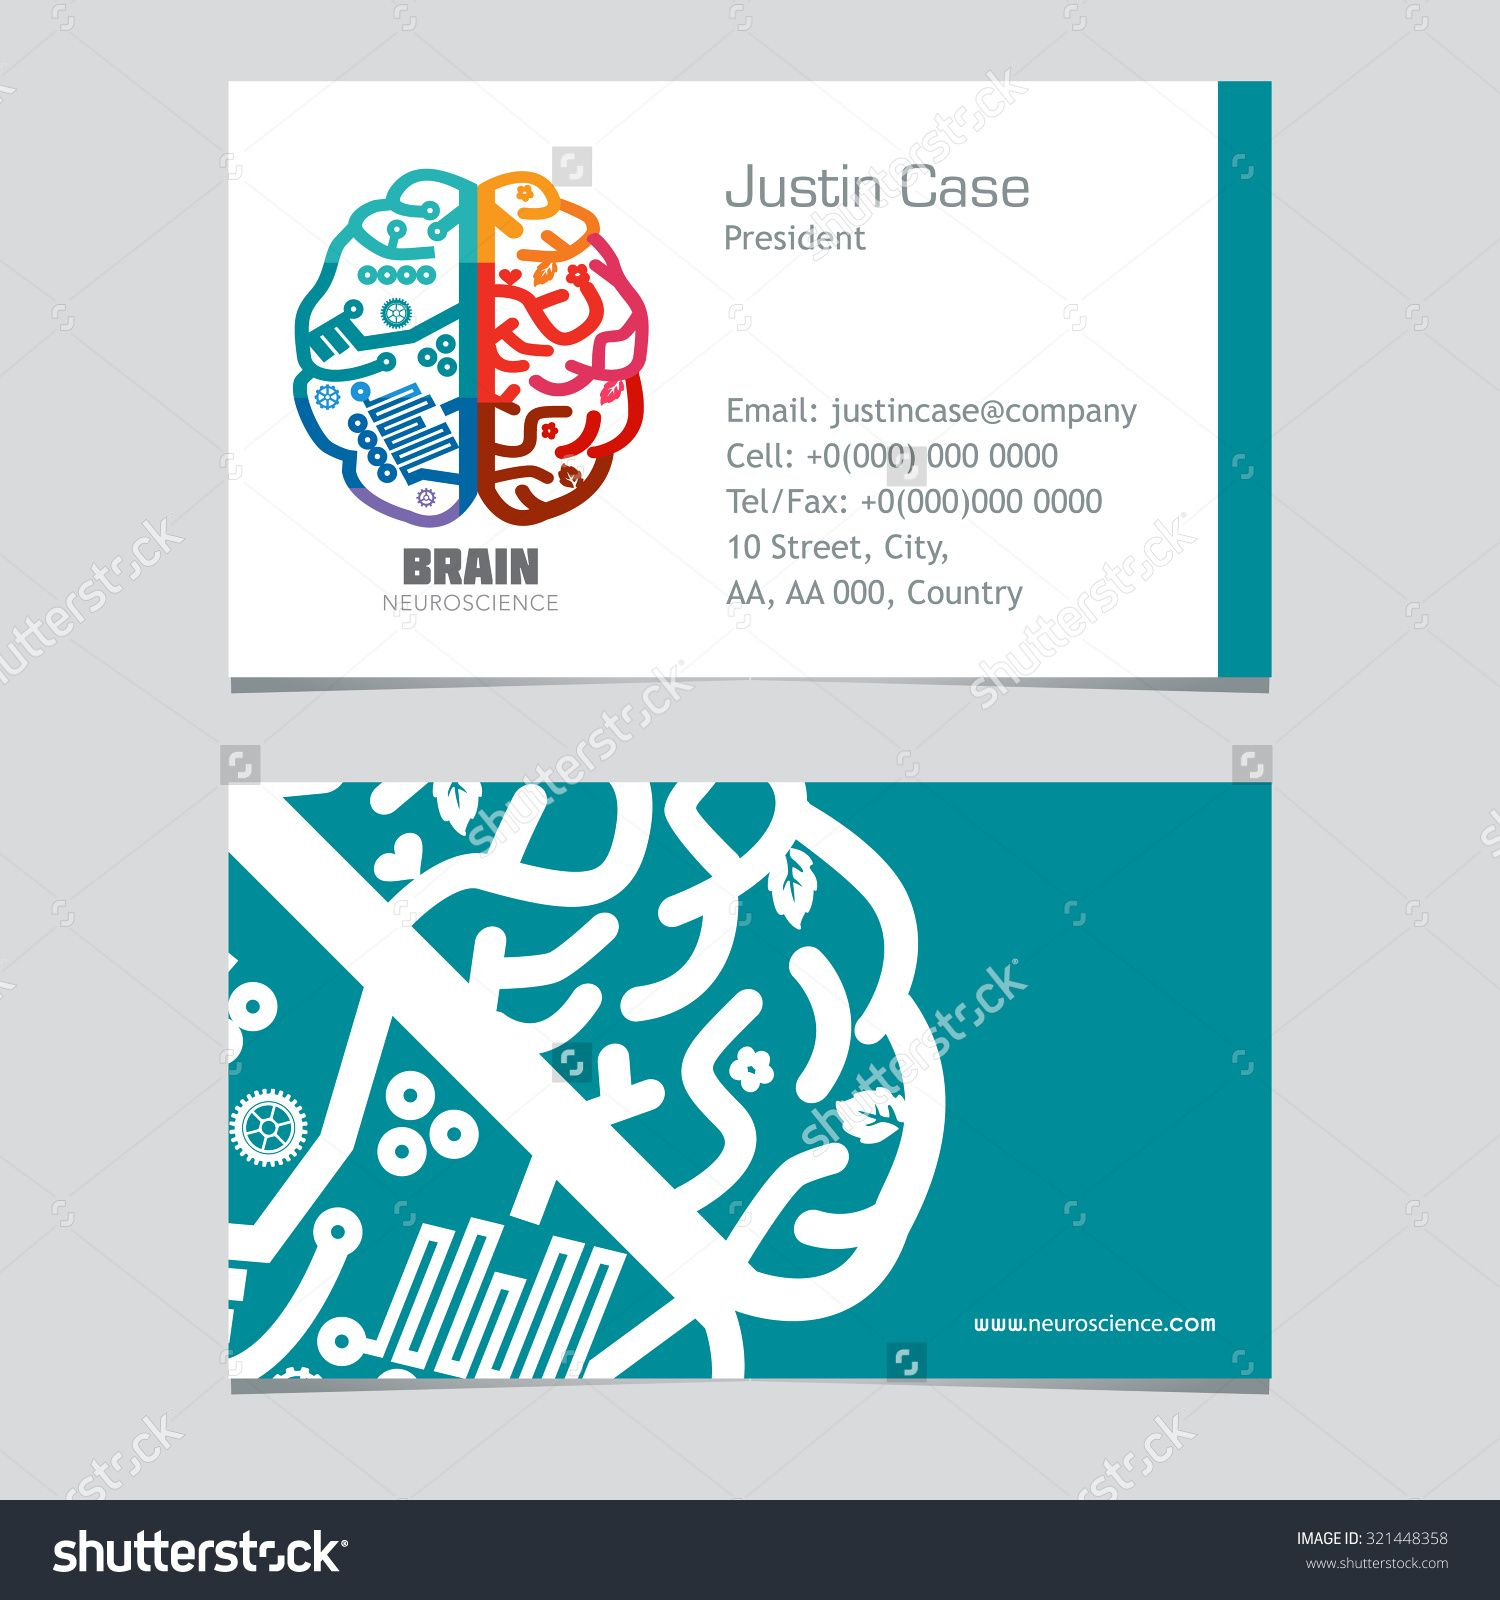 Brain Doctor Business Card Google Search Doctor Business Cards Google Business Card Psychology